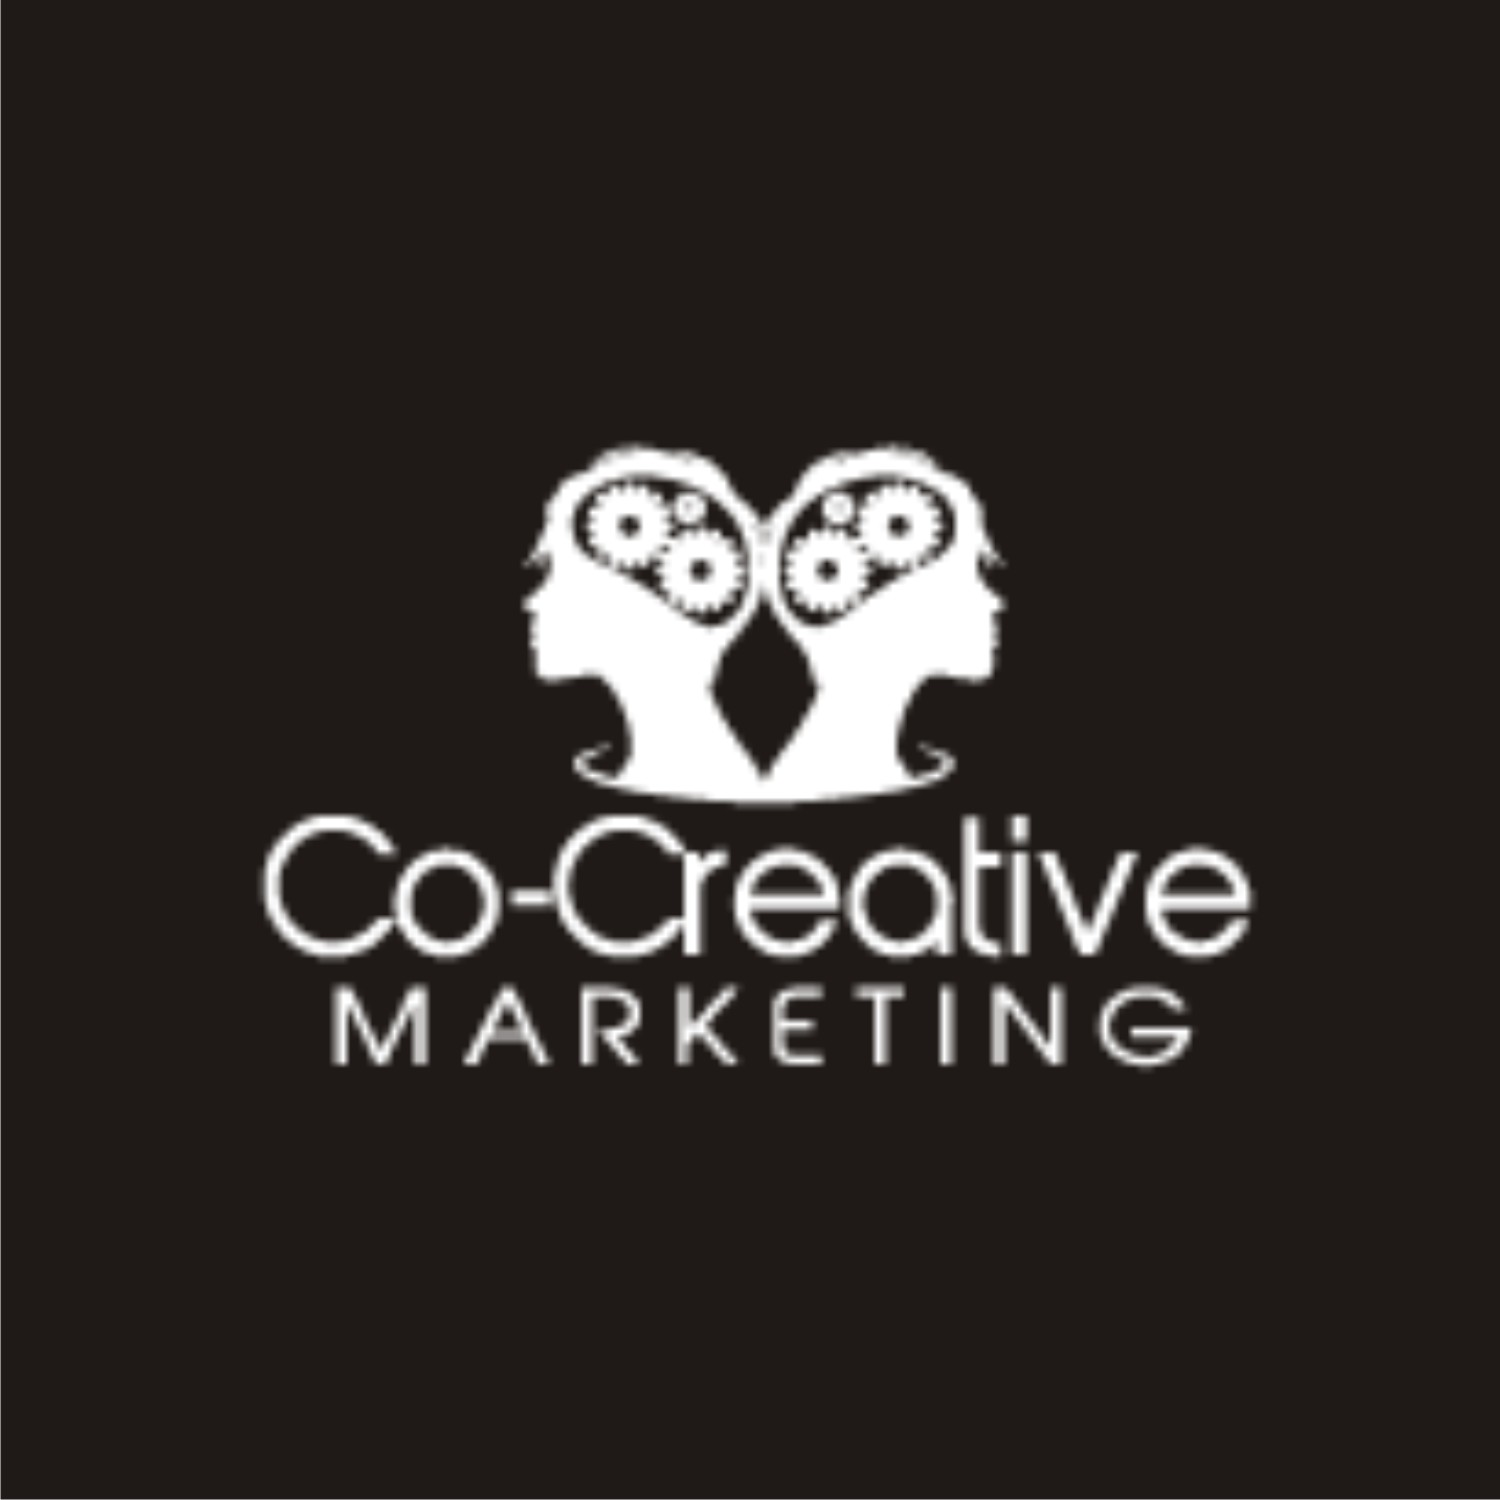 Co-Creative Marketing